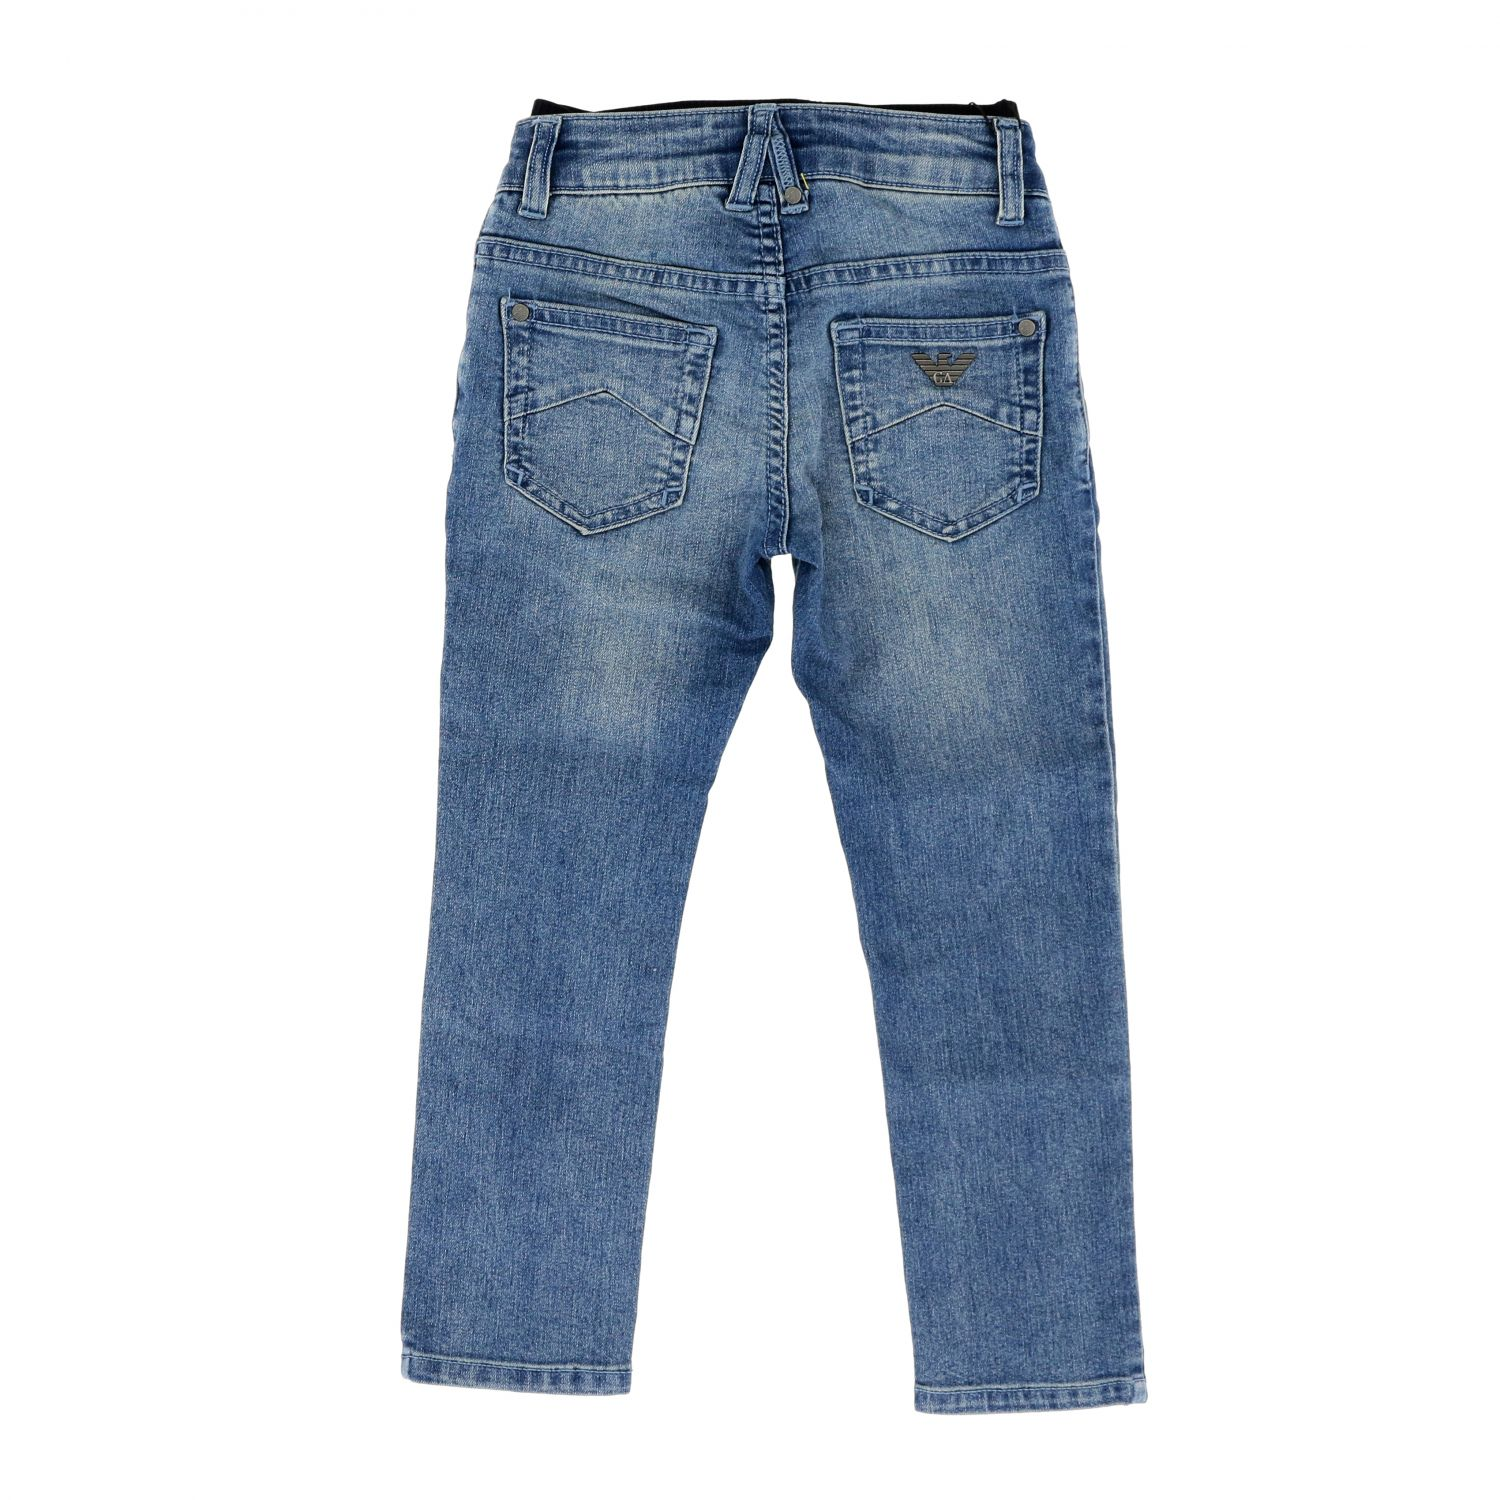 Emporio Armani jeans in used denim with logoed band denim 2